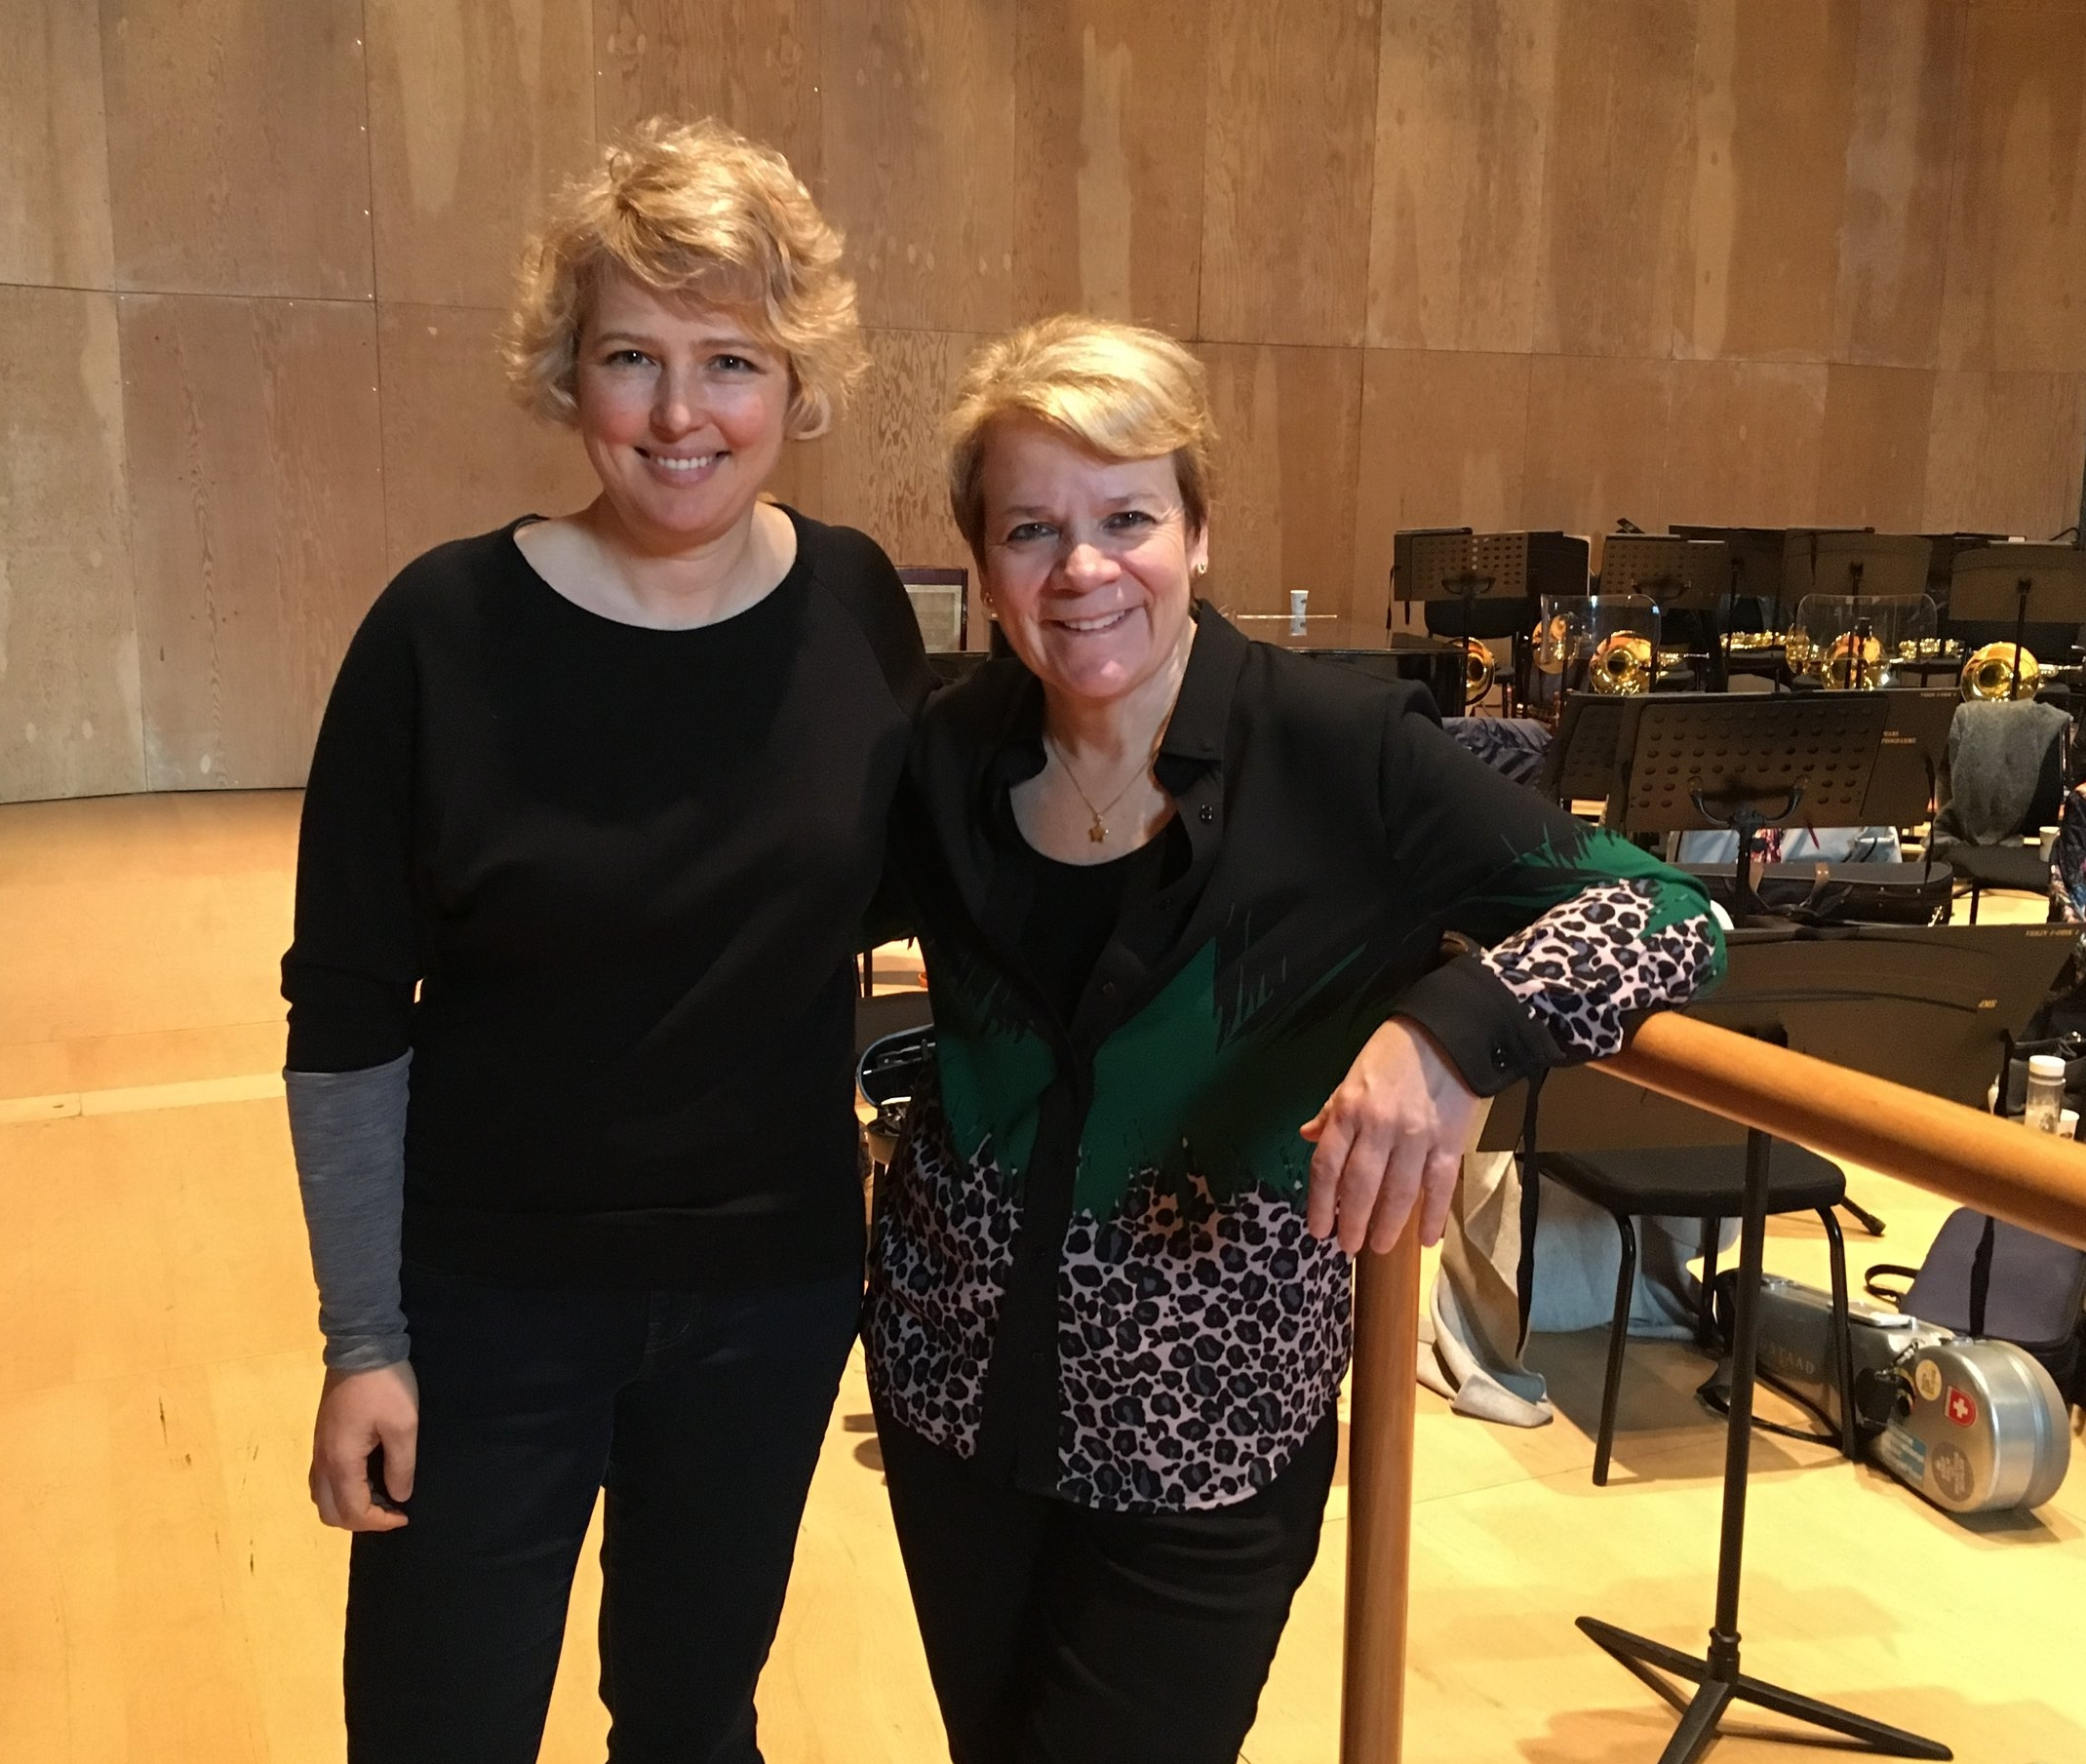 The Conductors' Blog - Read as conductor's Marin Alsop and Karin Hendrickson track the progress of the Britten-Pears Orchestra: Read here.